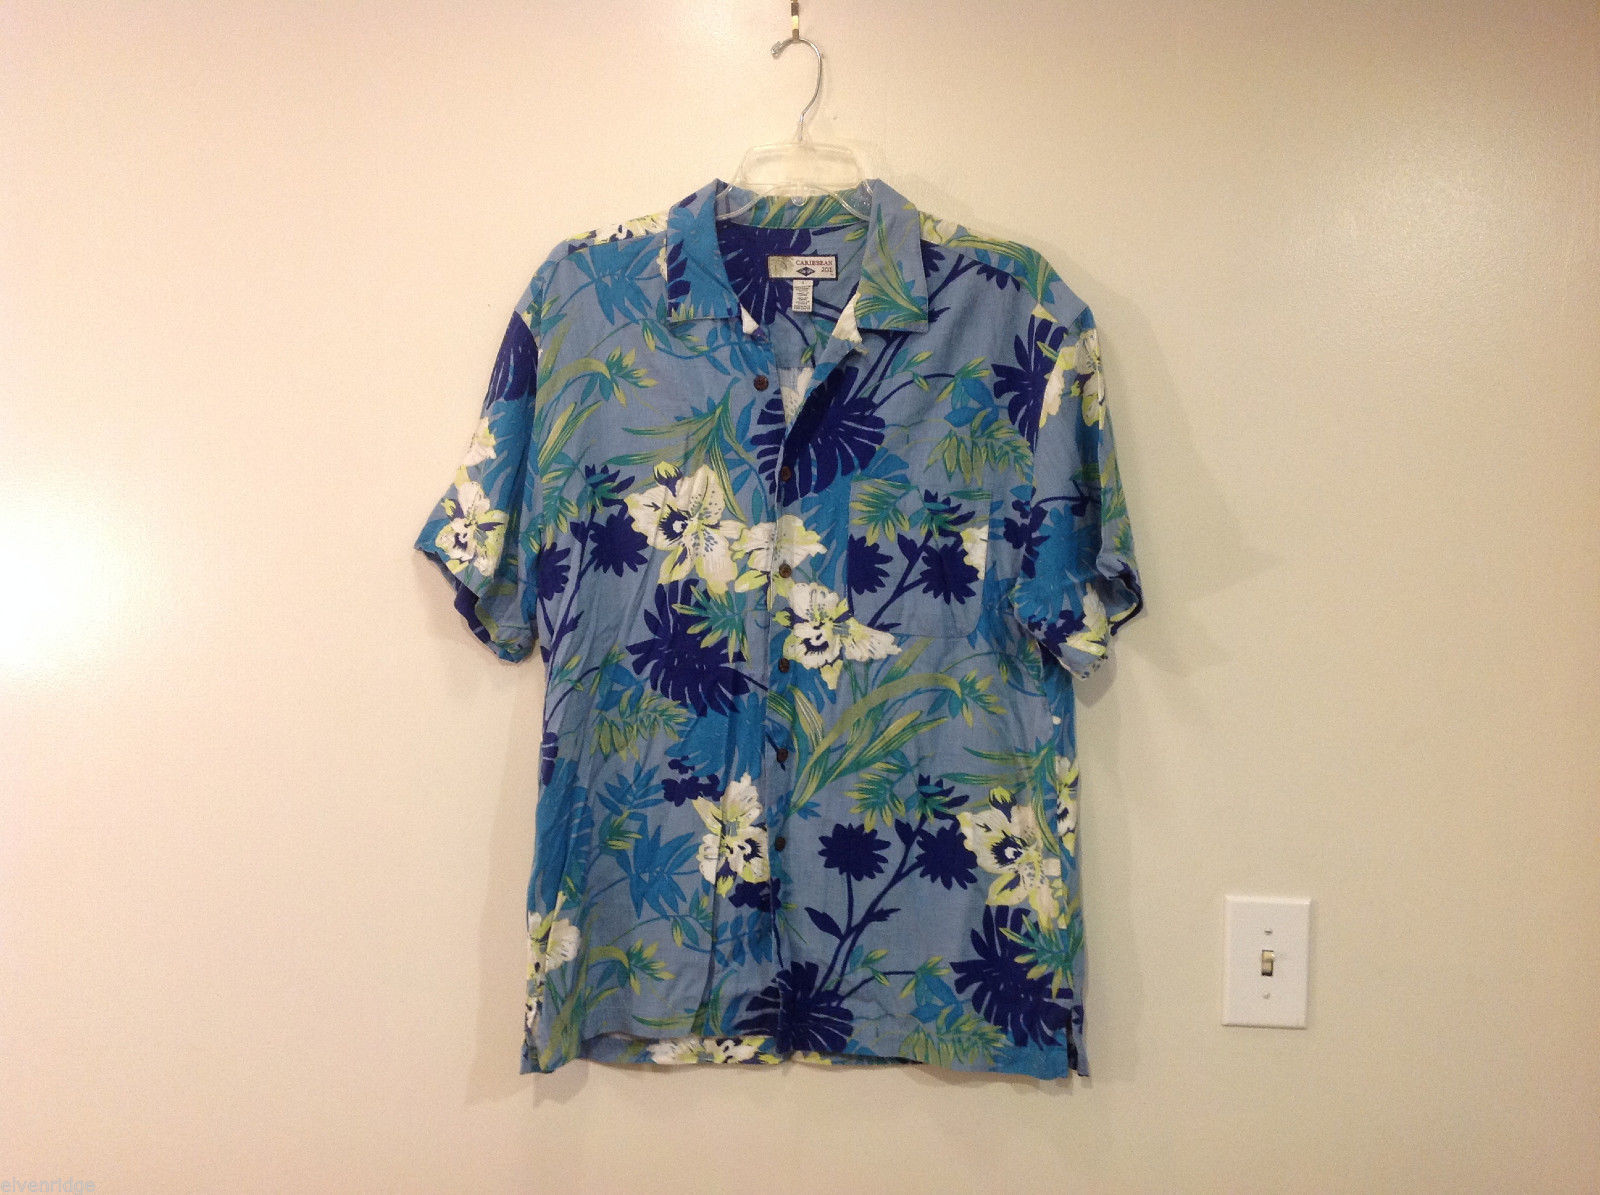 Mens Caribbean Joe 100% Rayon Summer Blue Green White Tropical Shirt, Size L